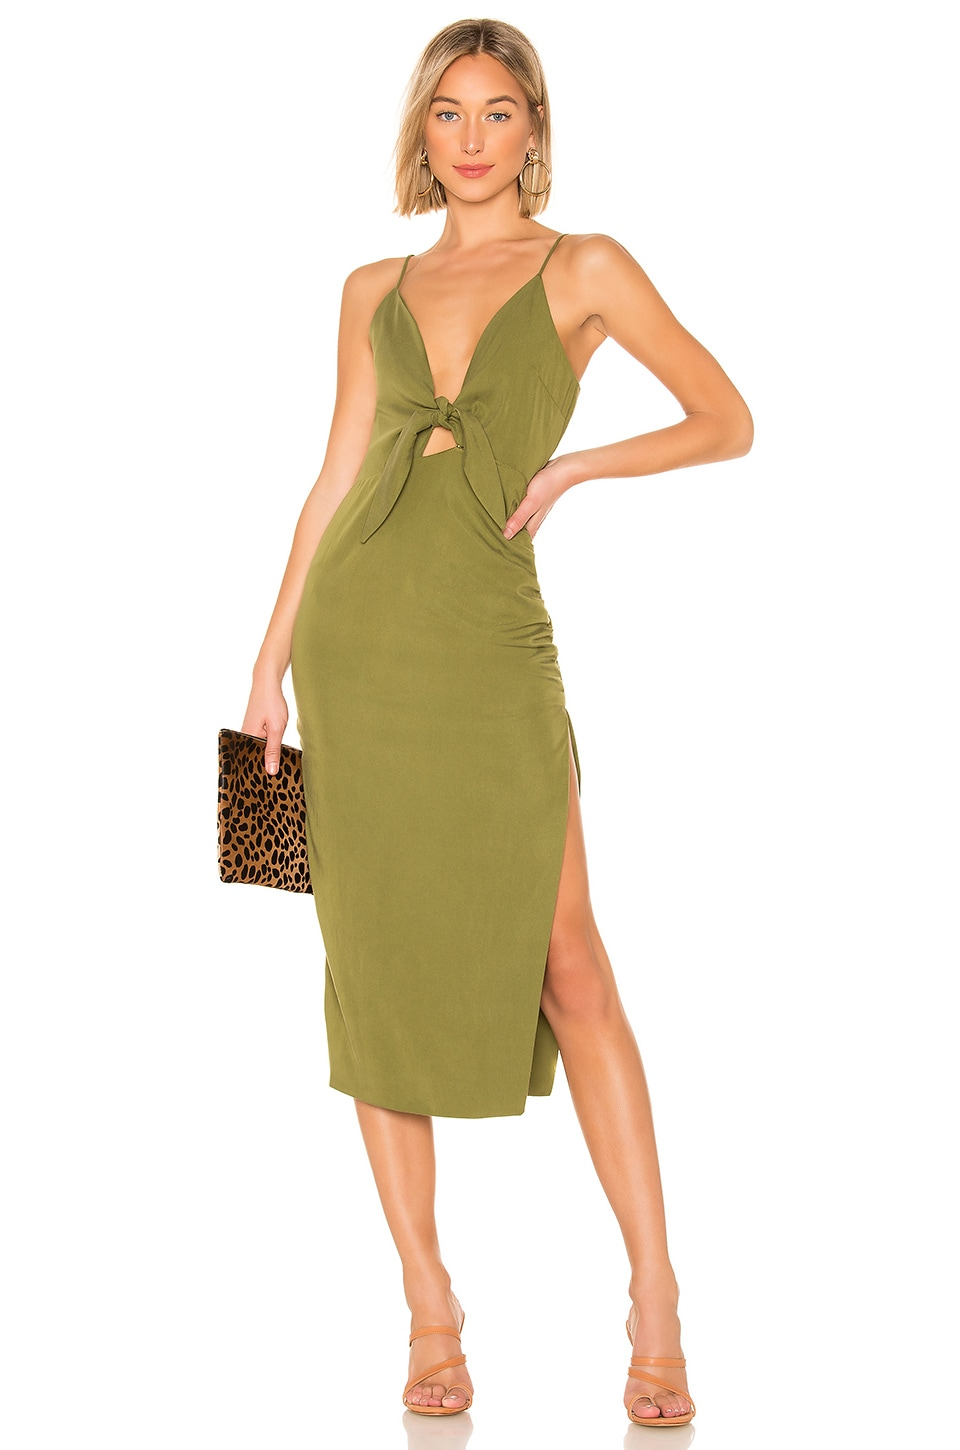 House of Harlow 1960 x REVOLVE Gail Dress in Olive